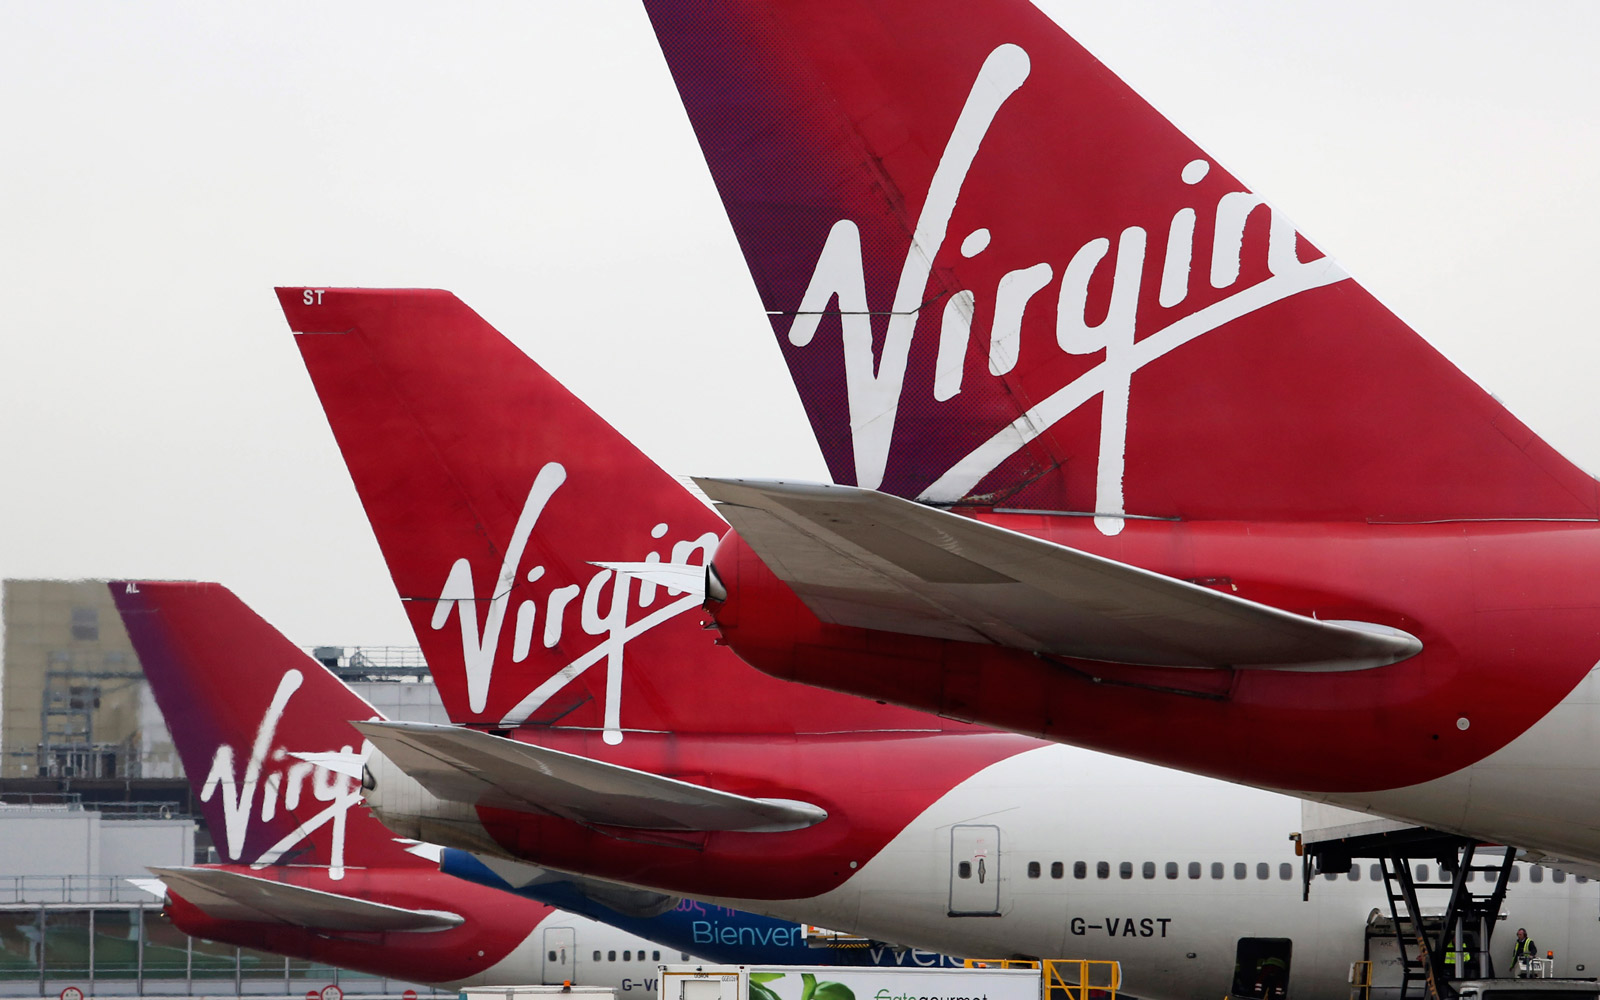 Virgin Atlantic Just Introduced Their Own Version of Basic Economy